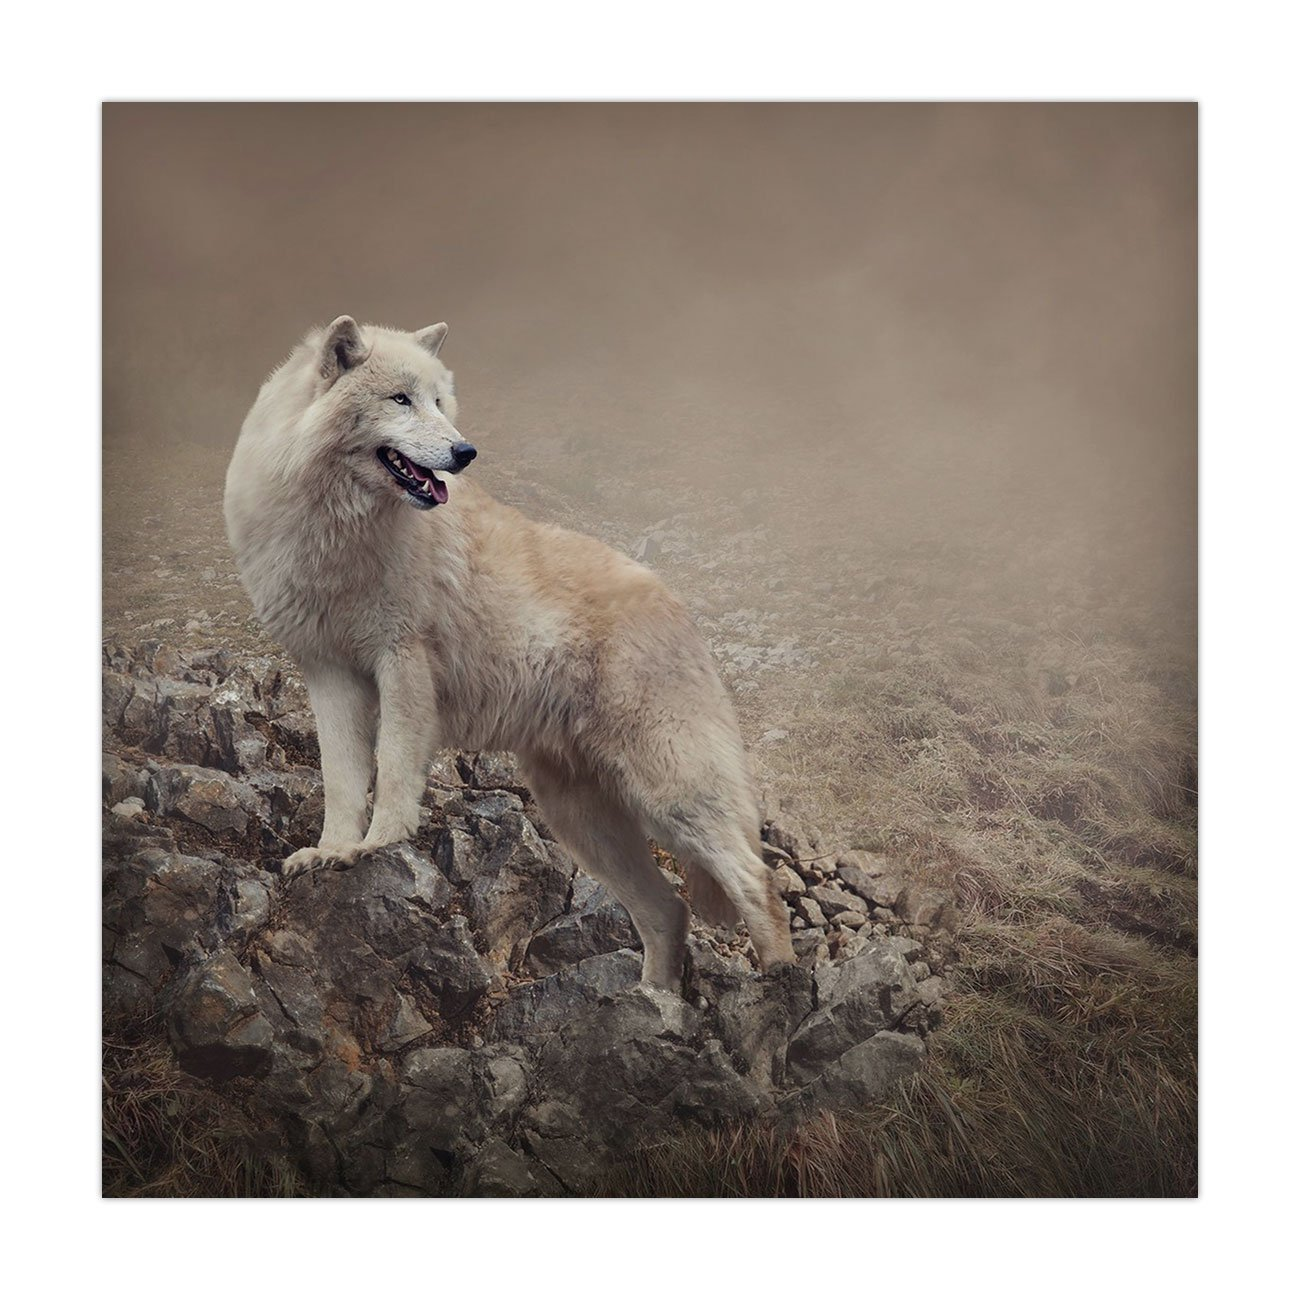 Polyester Square Tablecloth,Animal,White Wolf on Rocks at the Night Hazy Misty Weather Wildlife Nature Scenery Print Decorative,Warm Taupe,Dining Room Kitchen Picnic Table Cloth Cover,for Outdoor Indo